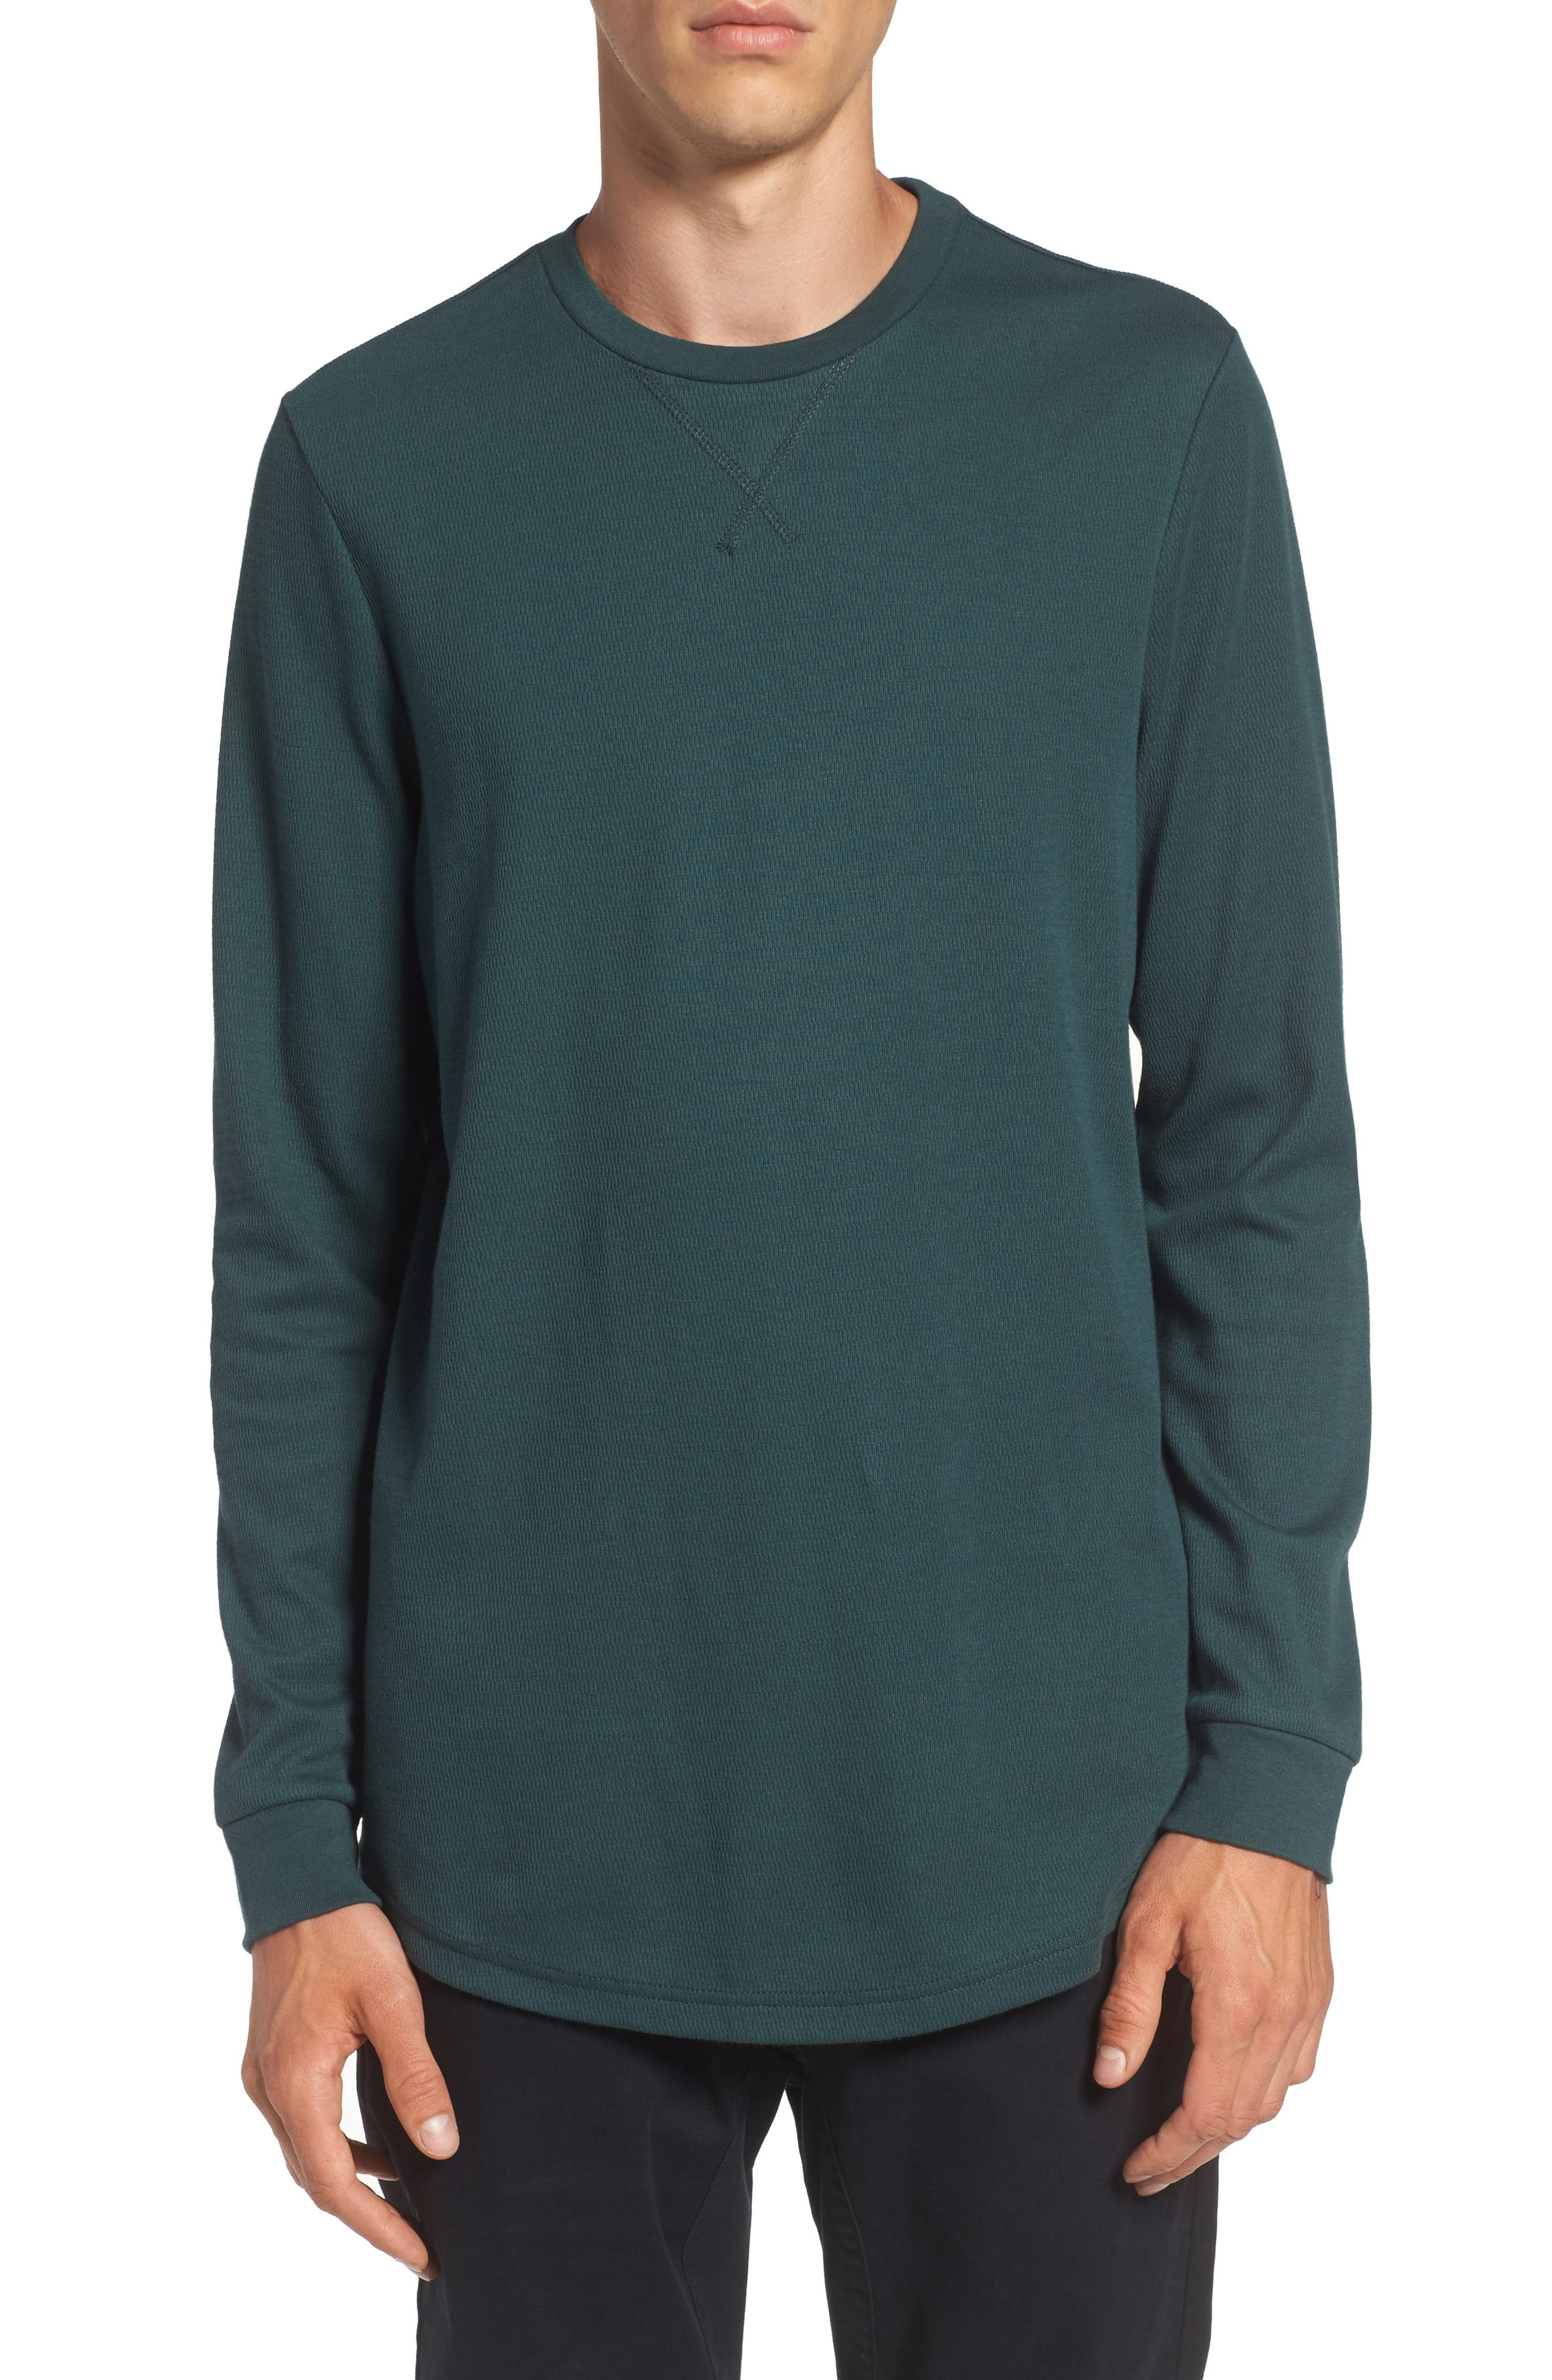 The Rail Longline Thermal T-Shirt (2 for $50)